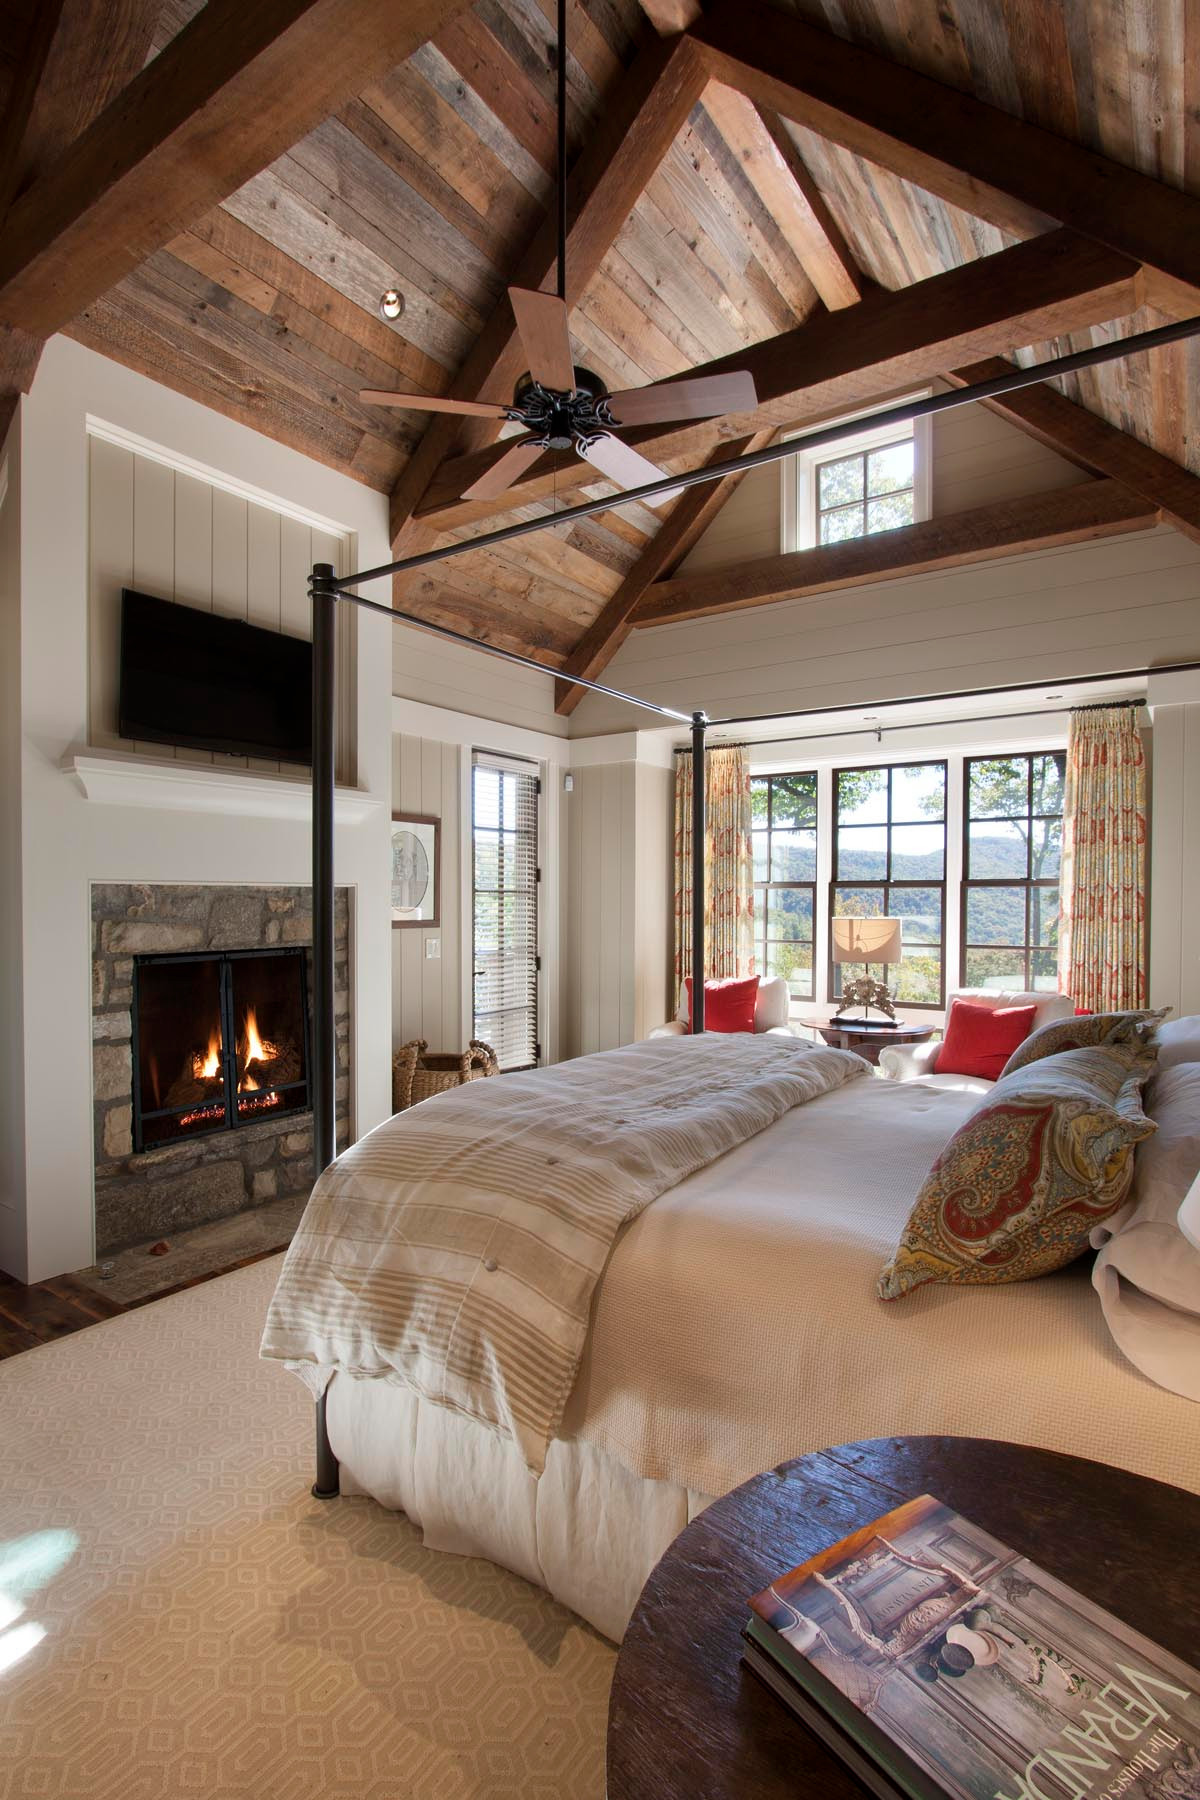 Can a Duvet Cover Be Used on a Comforter? Rustic Bedroom Fireplace Beige Rug Ceiling Fan Rustic Wood Ceiling Beams